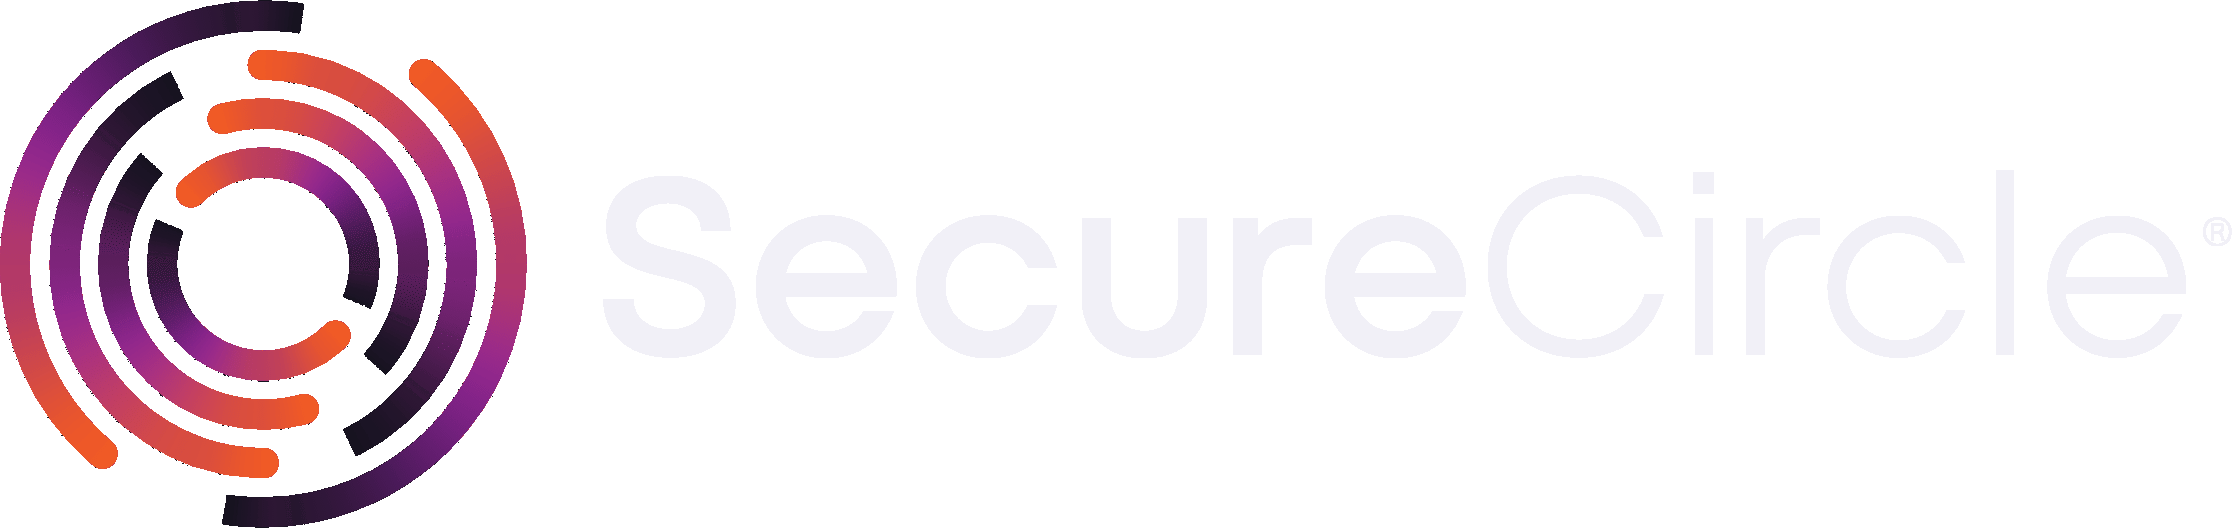 Securecircle